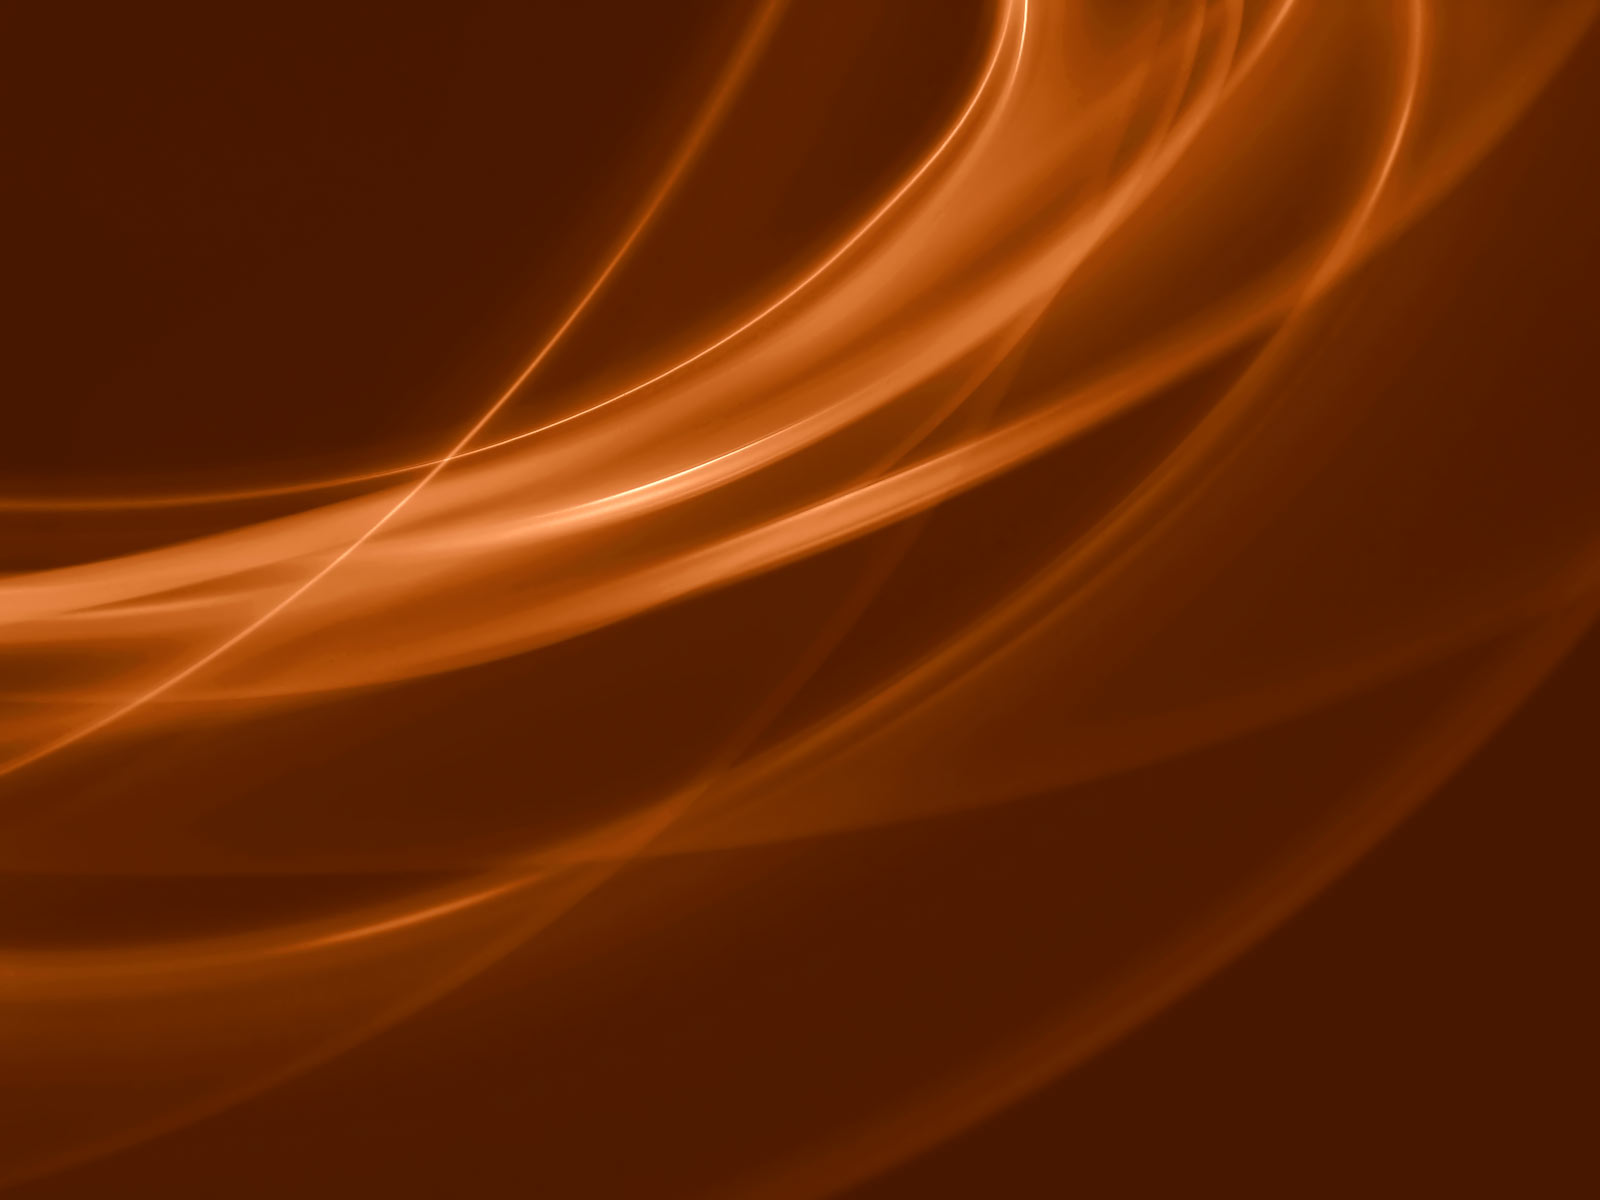 Background Wallpaper | Download 1600x1200 Brown Abstract